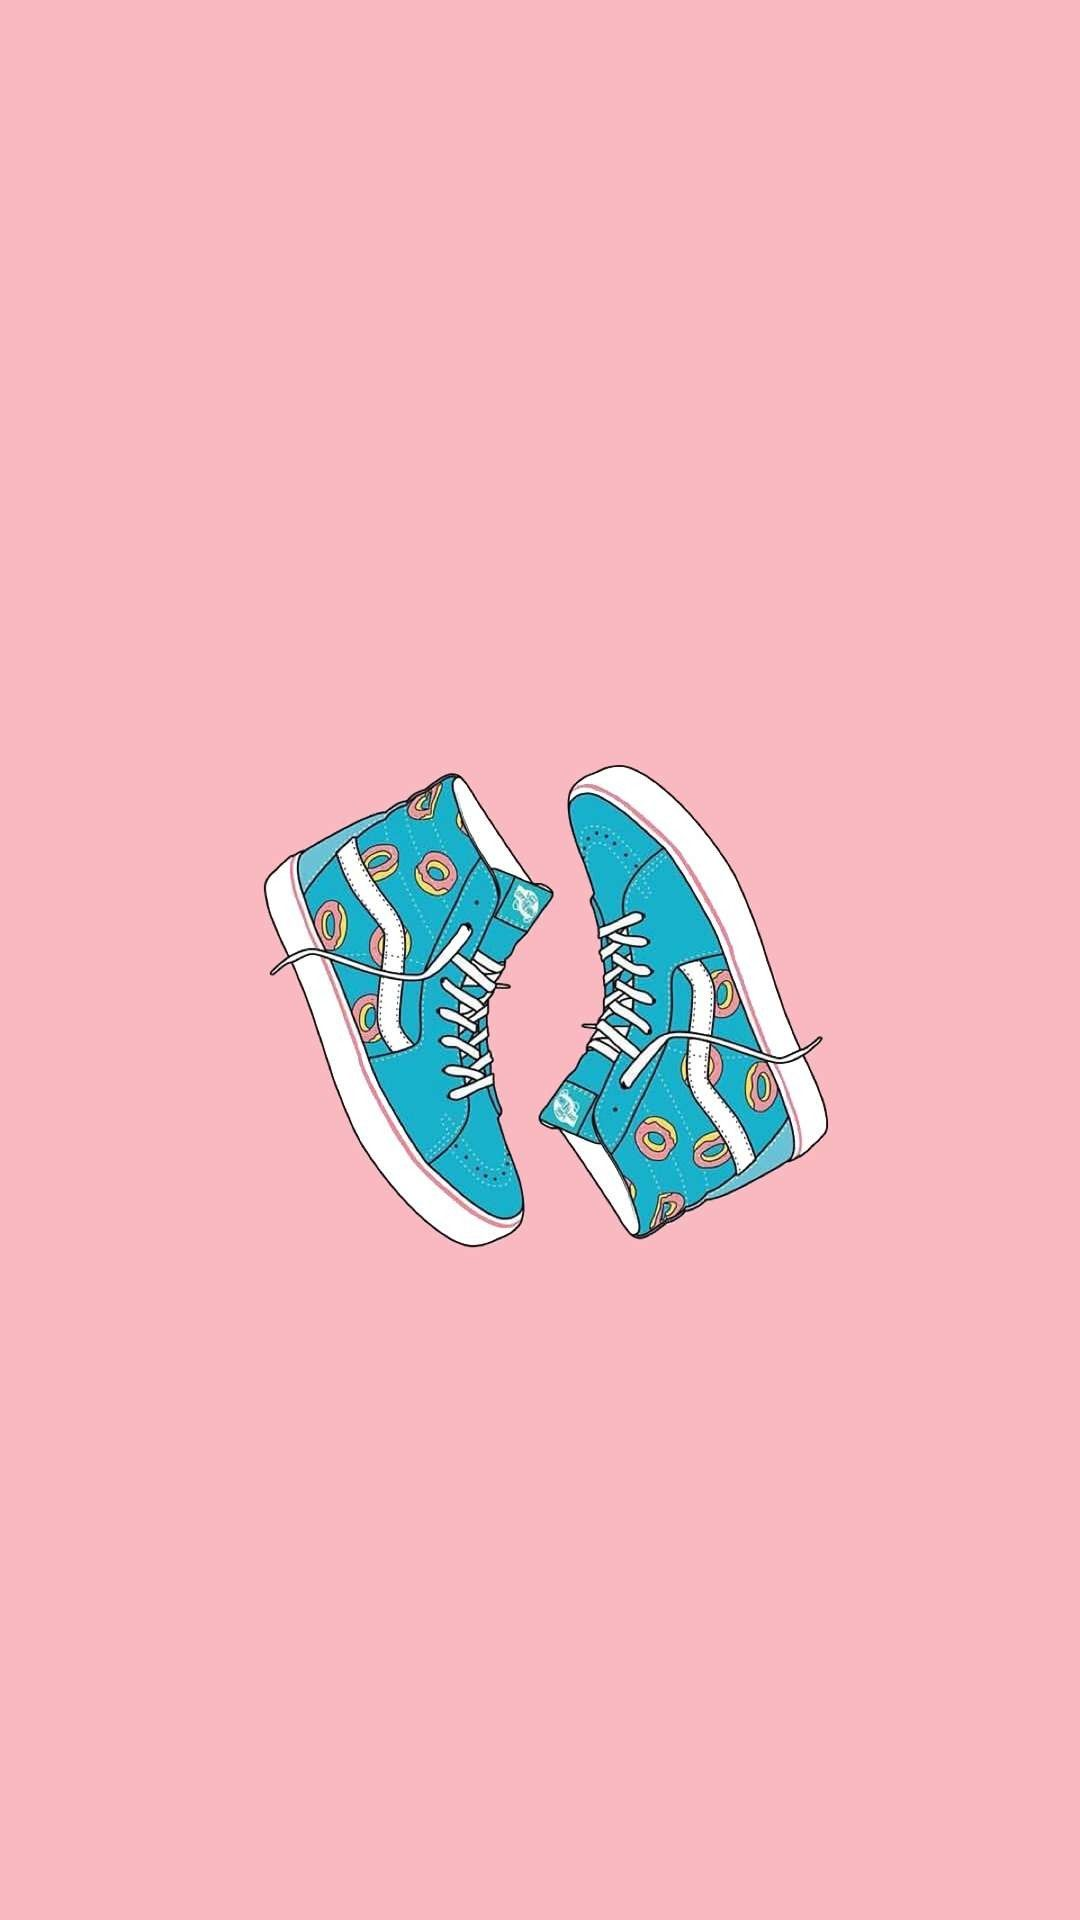 Pin By Samantha Keller On Shoes Iphone Wallpaper Sneakers